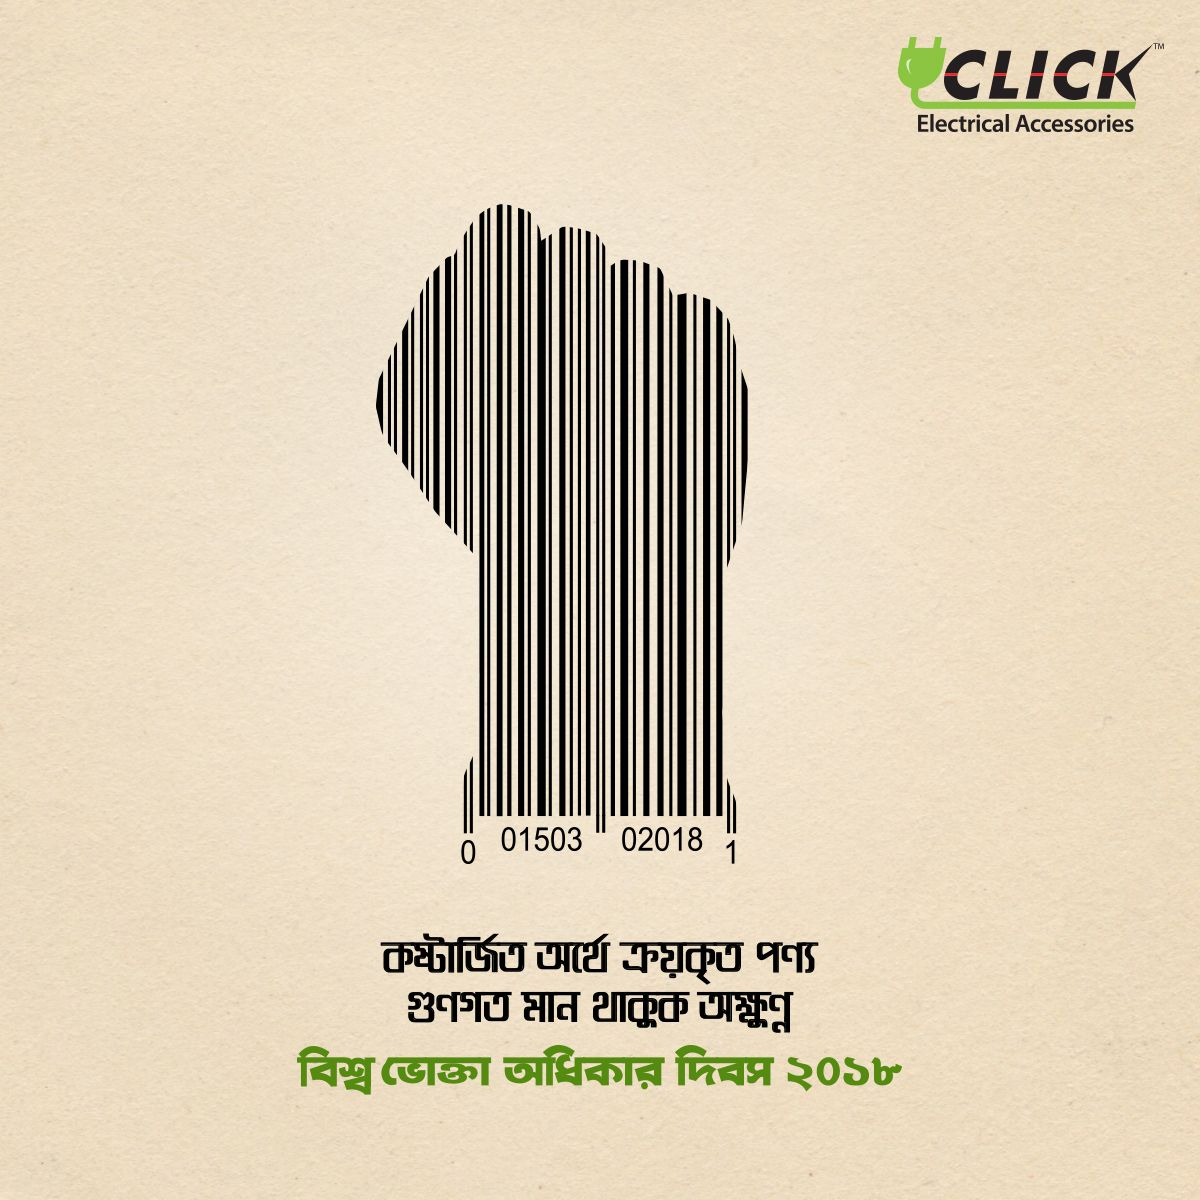 Click Consumer Rights Day Art Direction Advertising Web Design Poster Design